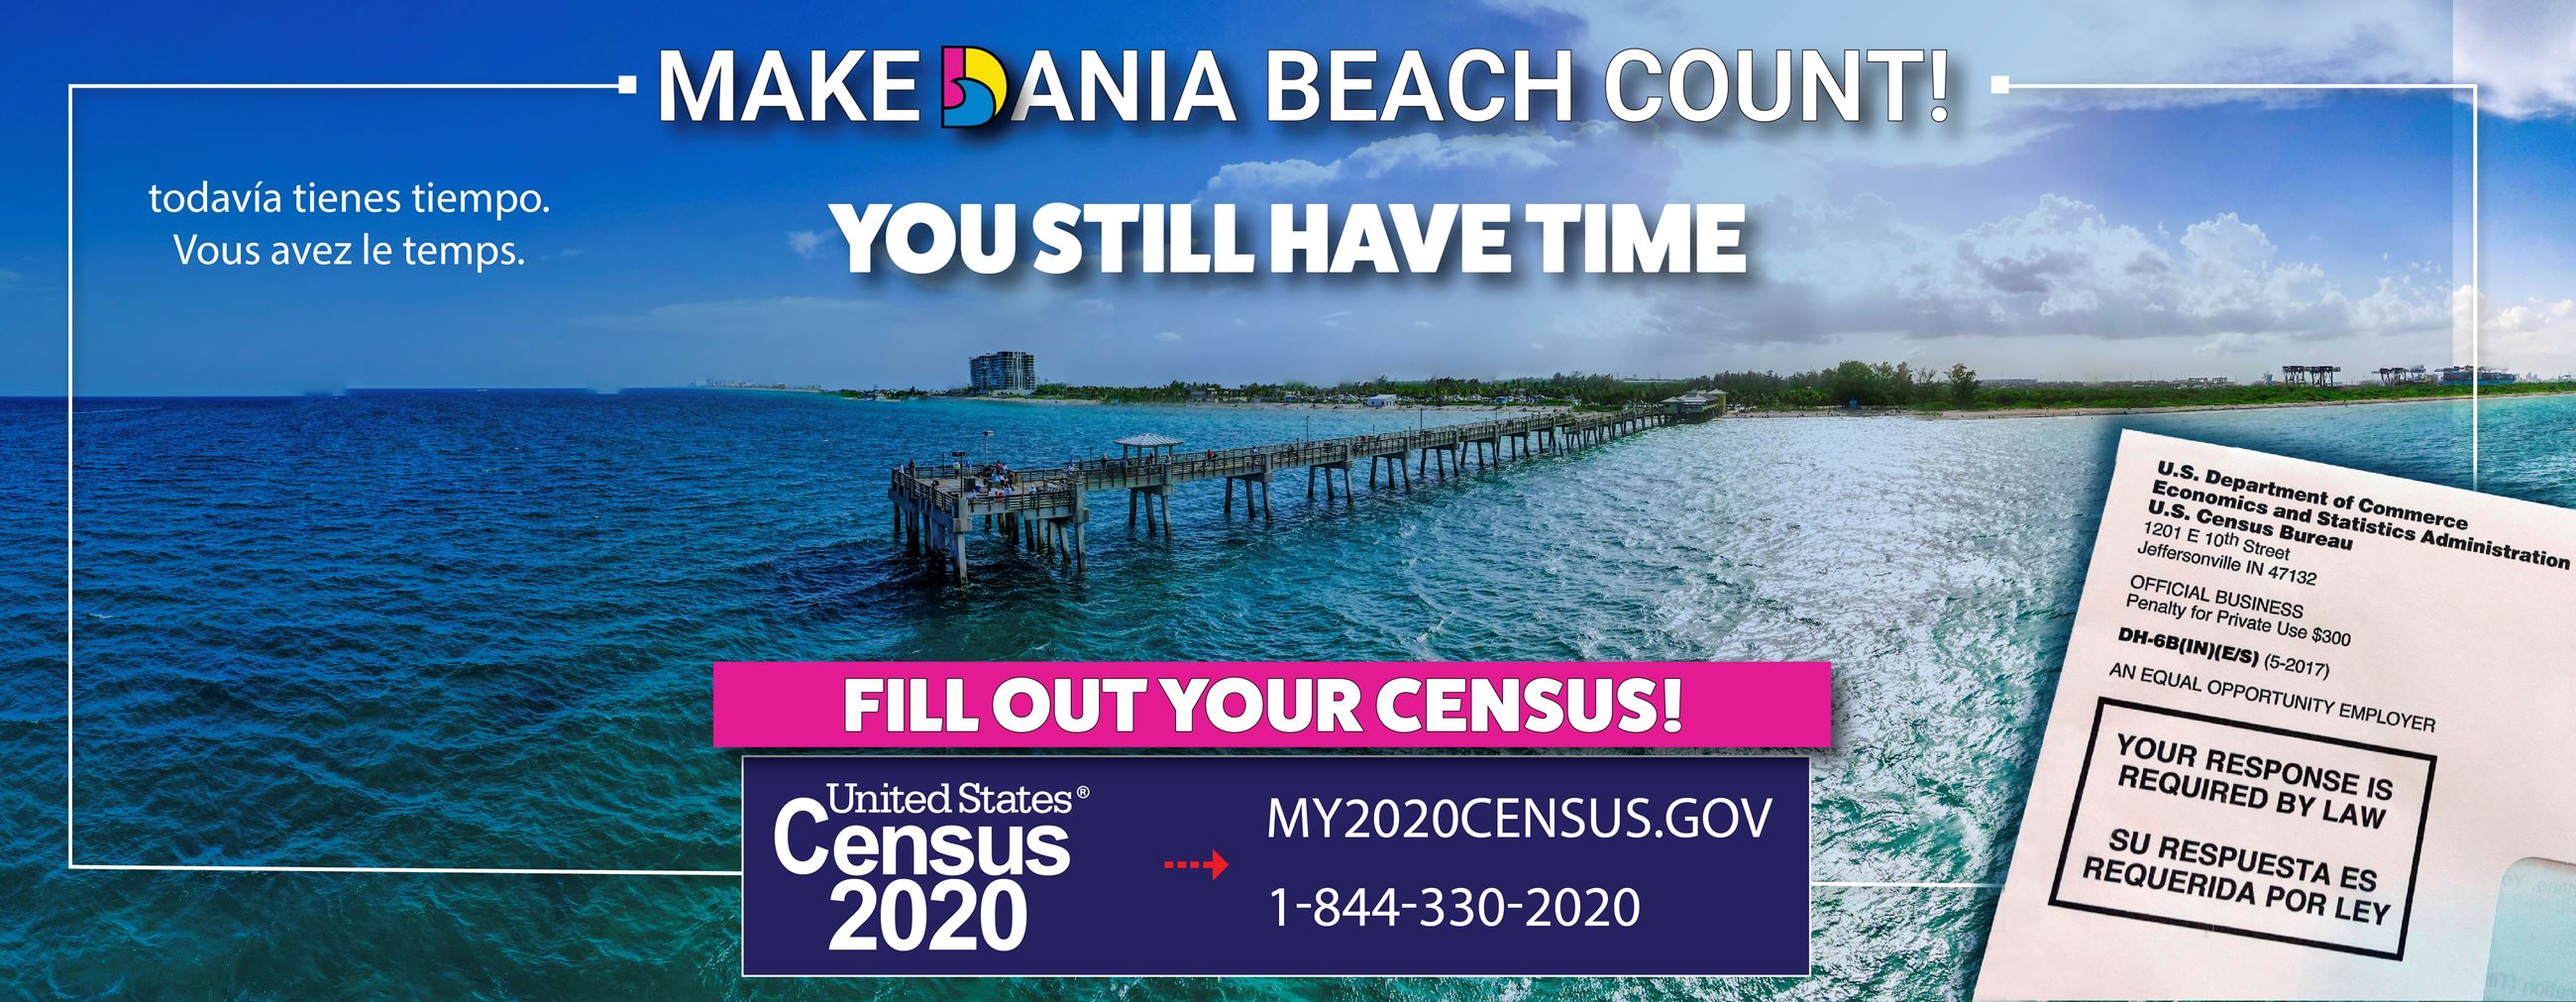 Dania Beach 2020 Census - It's Not Too Late. Everyone Counts in Dania Beach! daniabeachfl.gov/cen